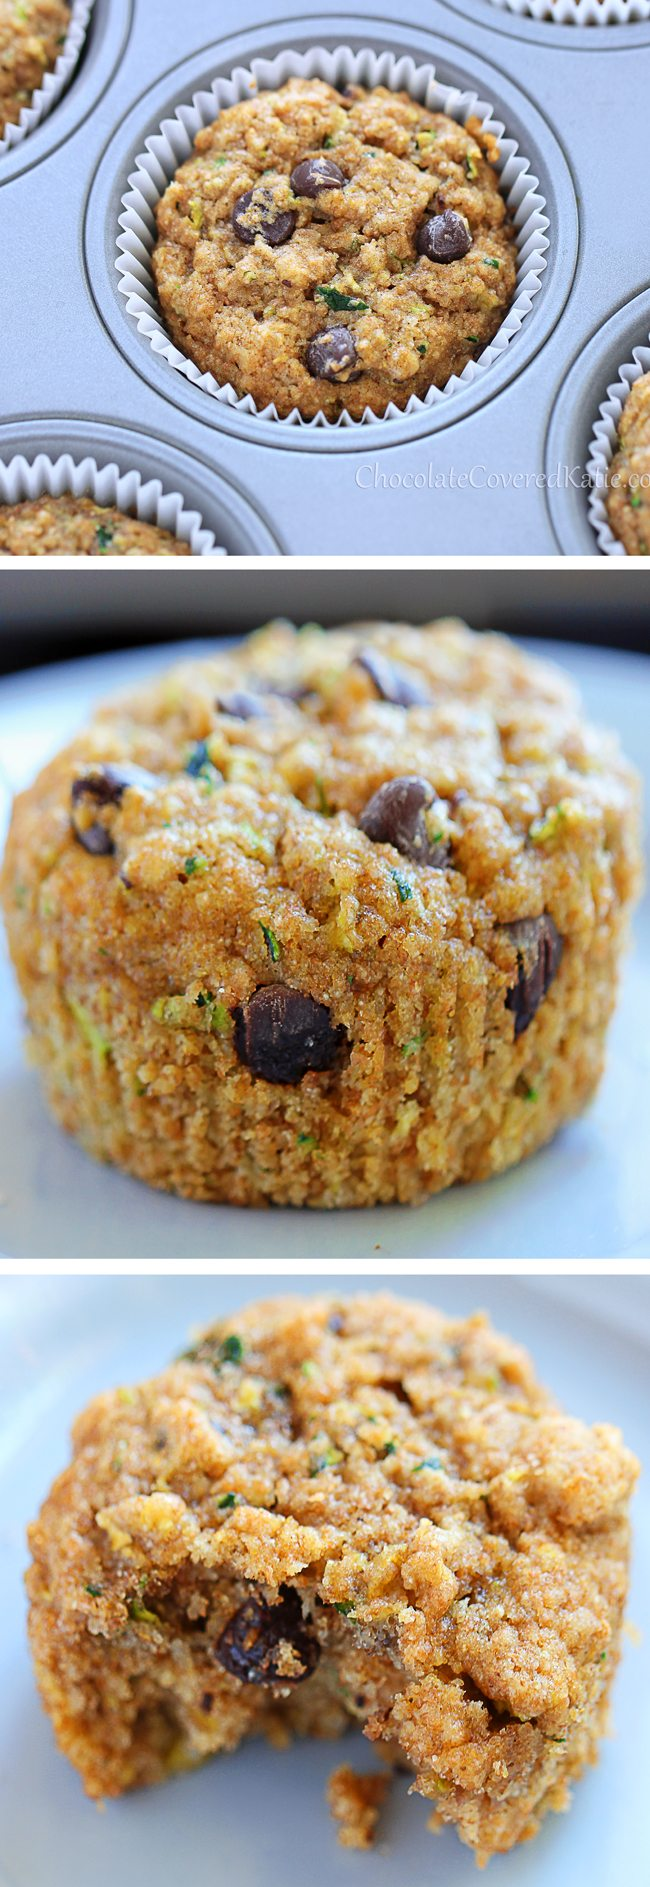 Chocolate Chip Zucchini Muffins - Deliciously Healthy!